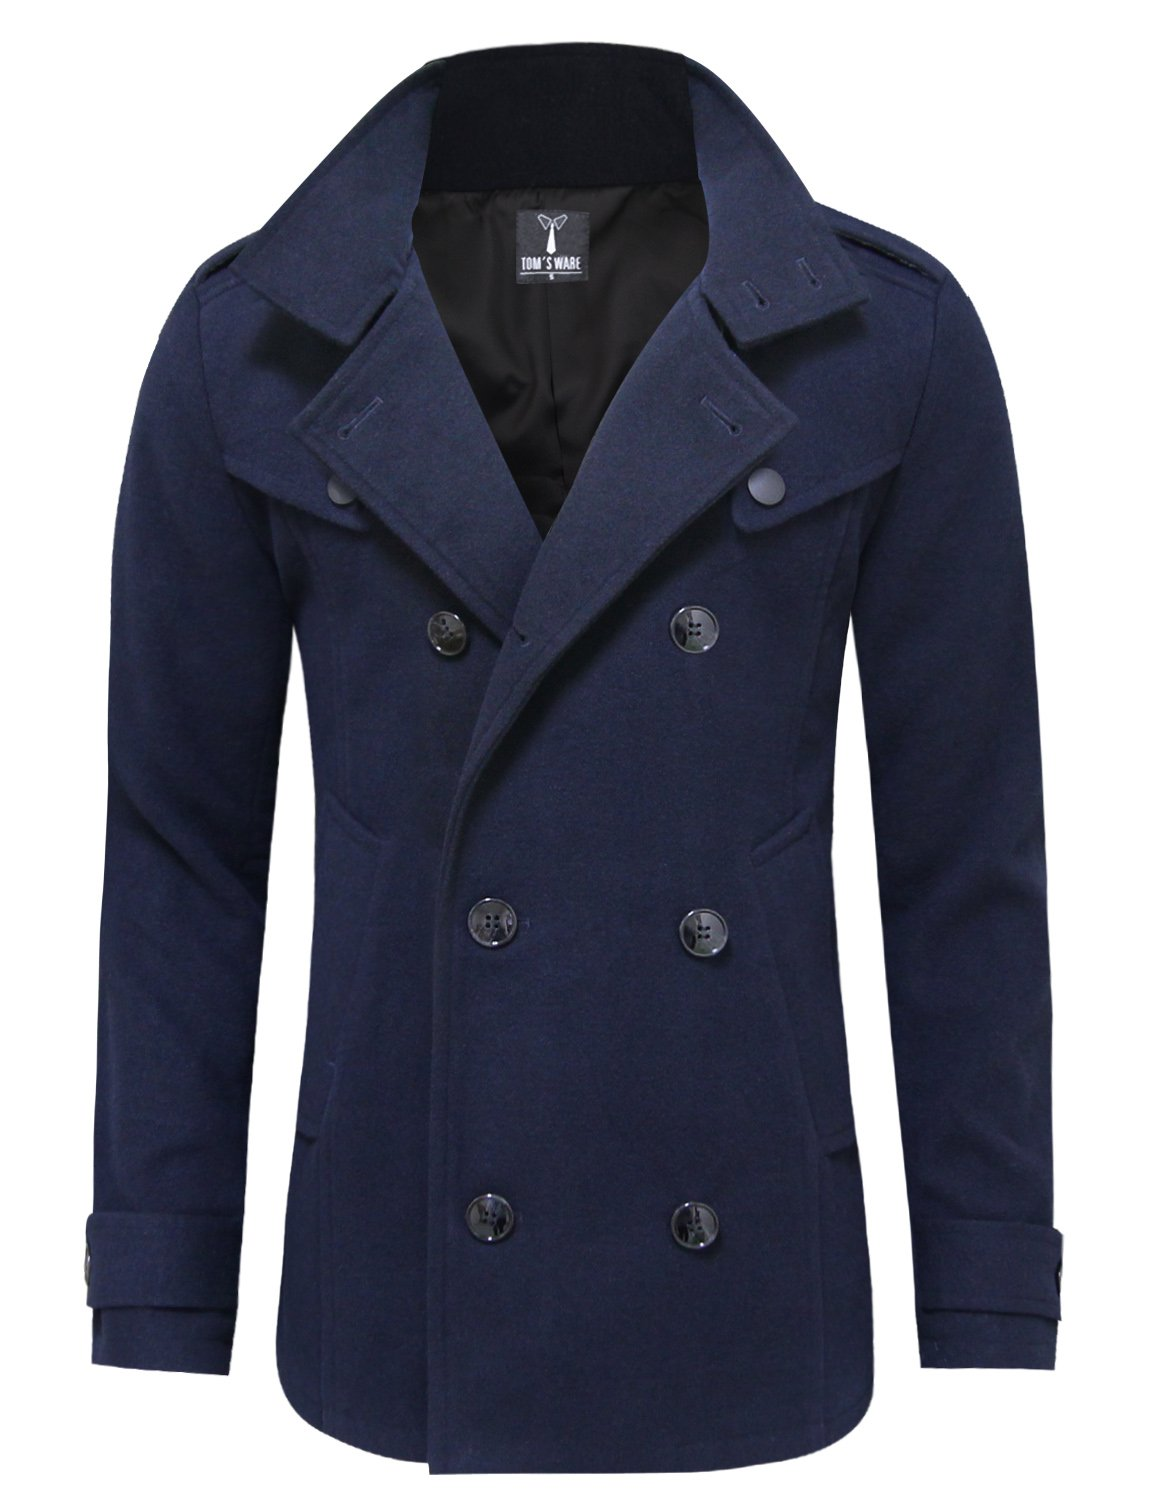 Tom's Ware Mens Stylish Fashion Classic Wool Double Breasted Pea Coat TWCC06-NAVY-US M by Tom's Ware